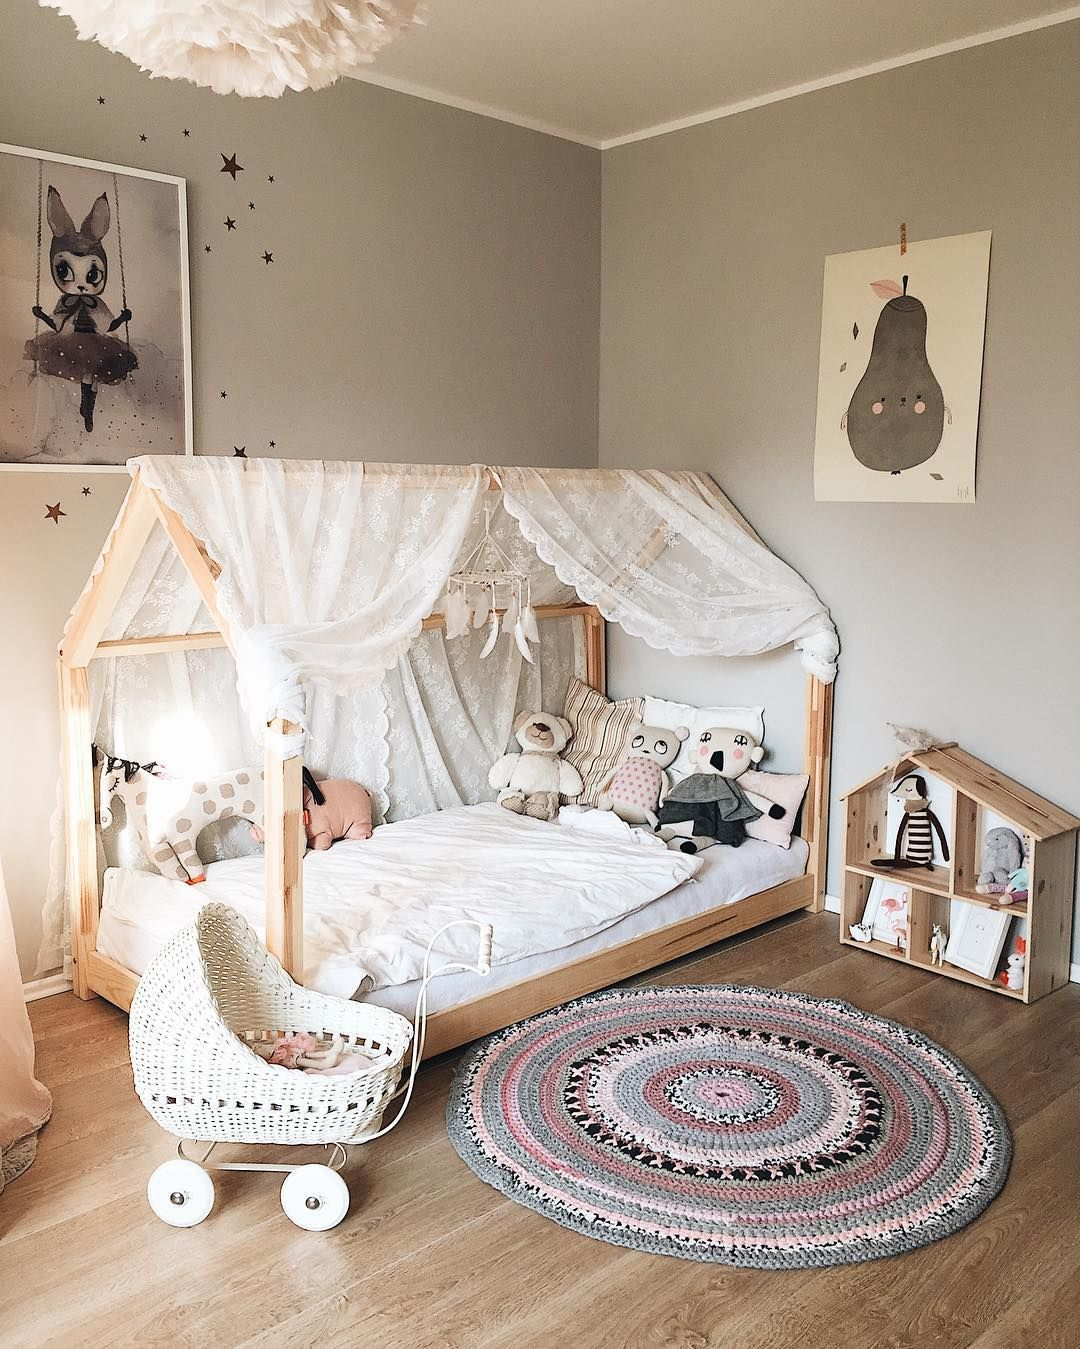 Einfaches hausfarbendesign draußen pin by sa de on nha dep  pinterest  room bedroom and girls bedroom